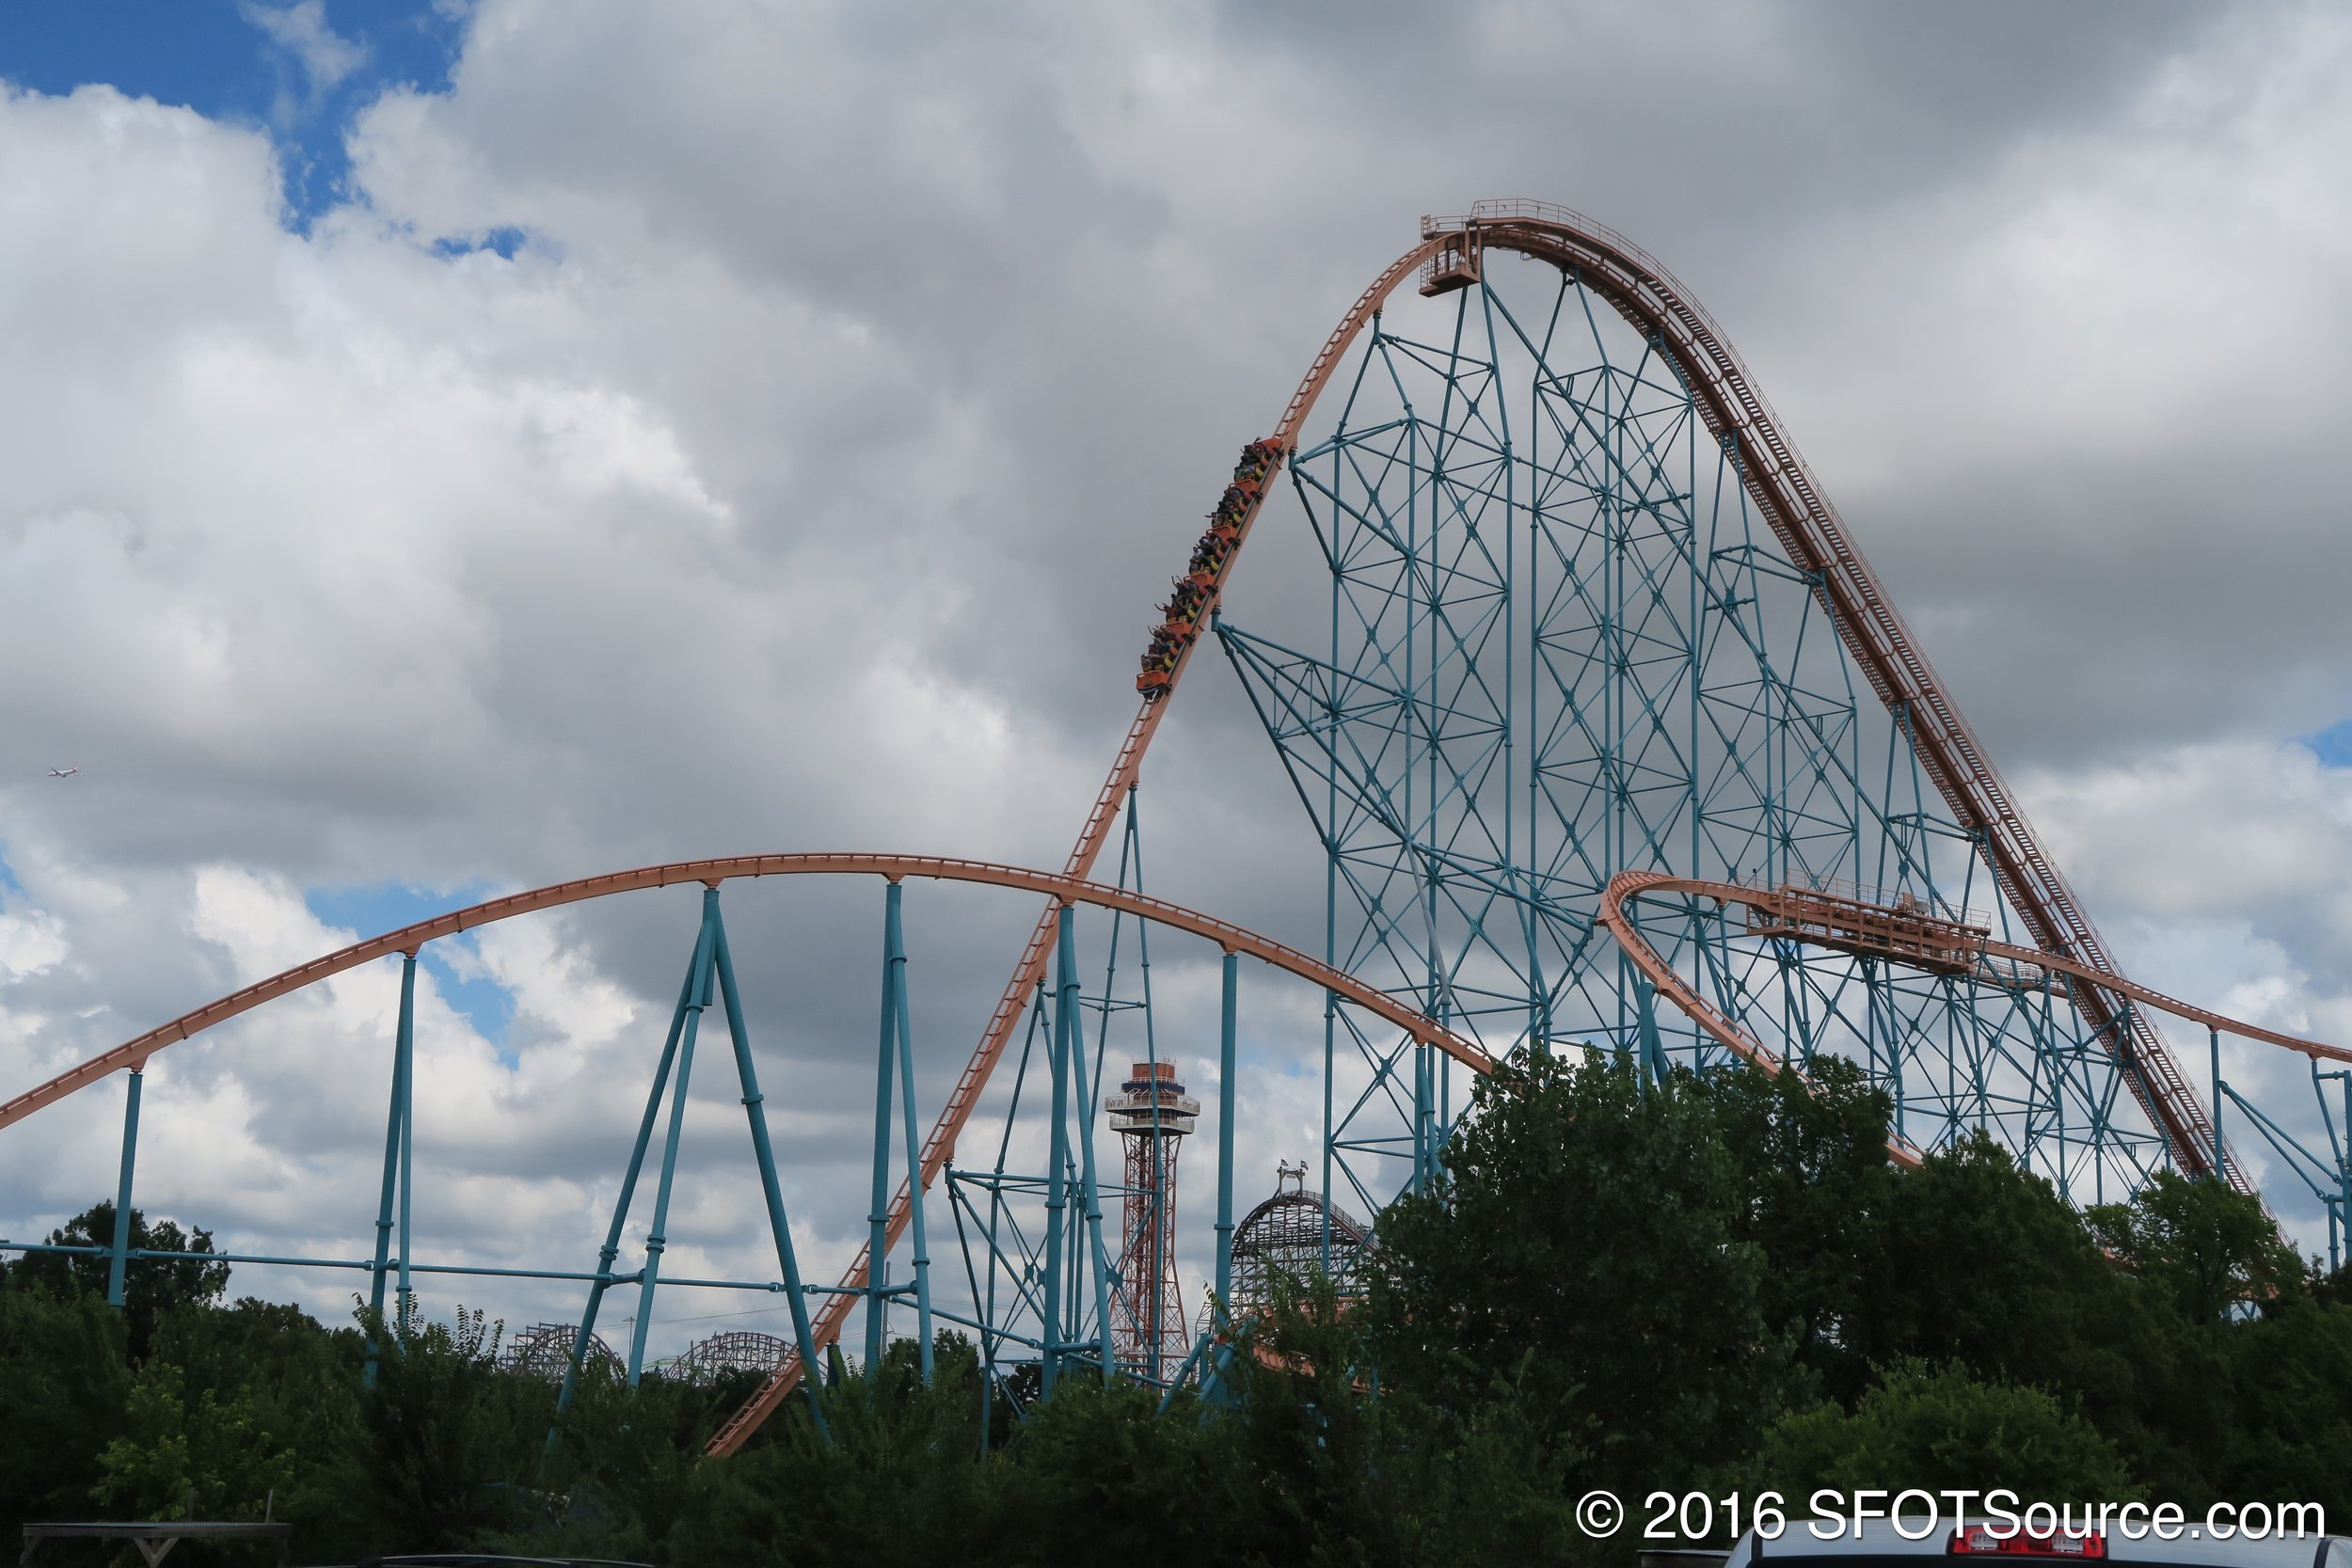 Titan is the tallest coaster in Texas.